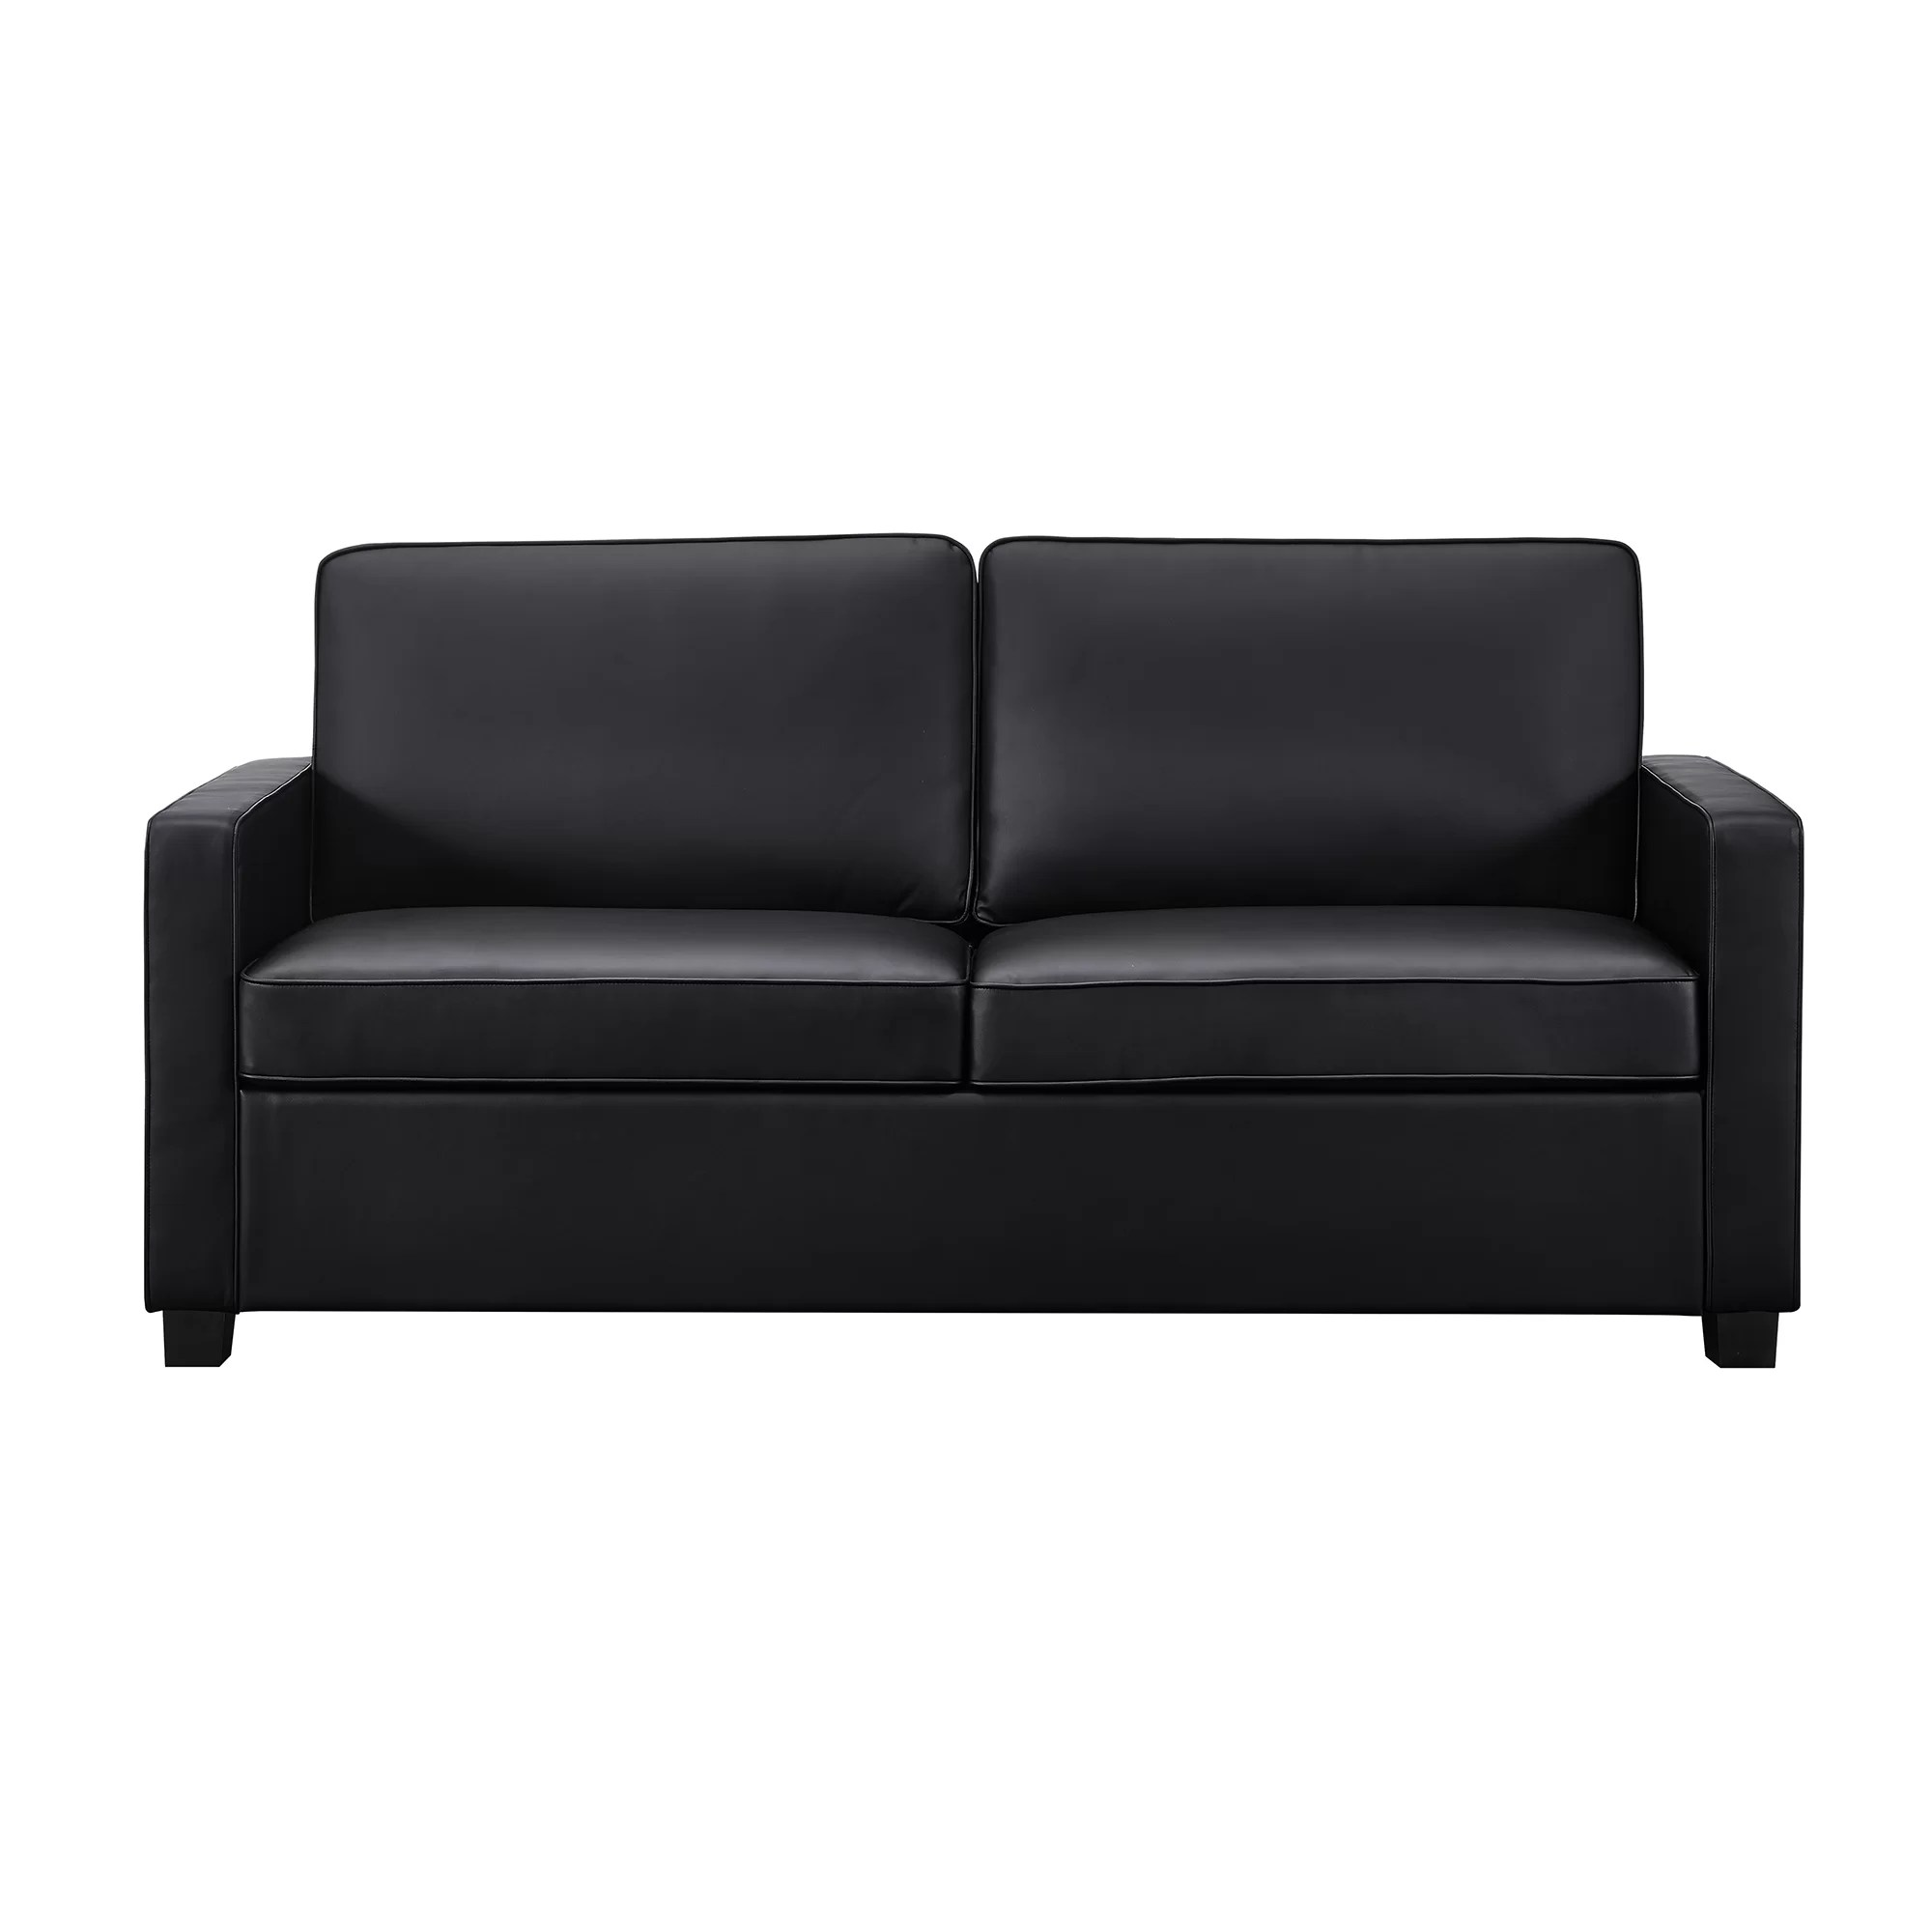 furniture row sofa sleepers different types of seats mercury cabell full sleeper and reviews wayfair